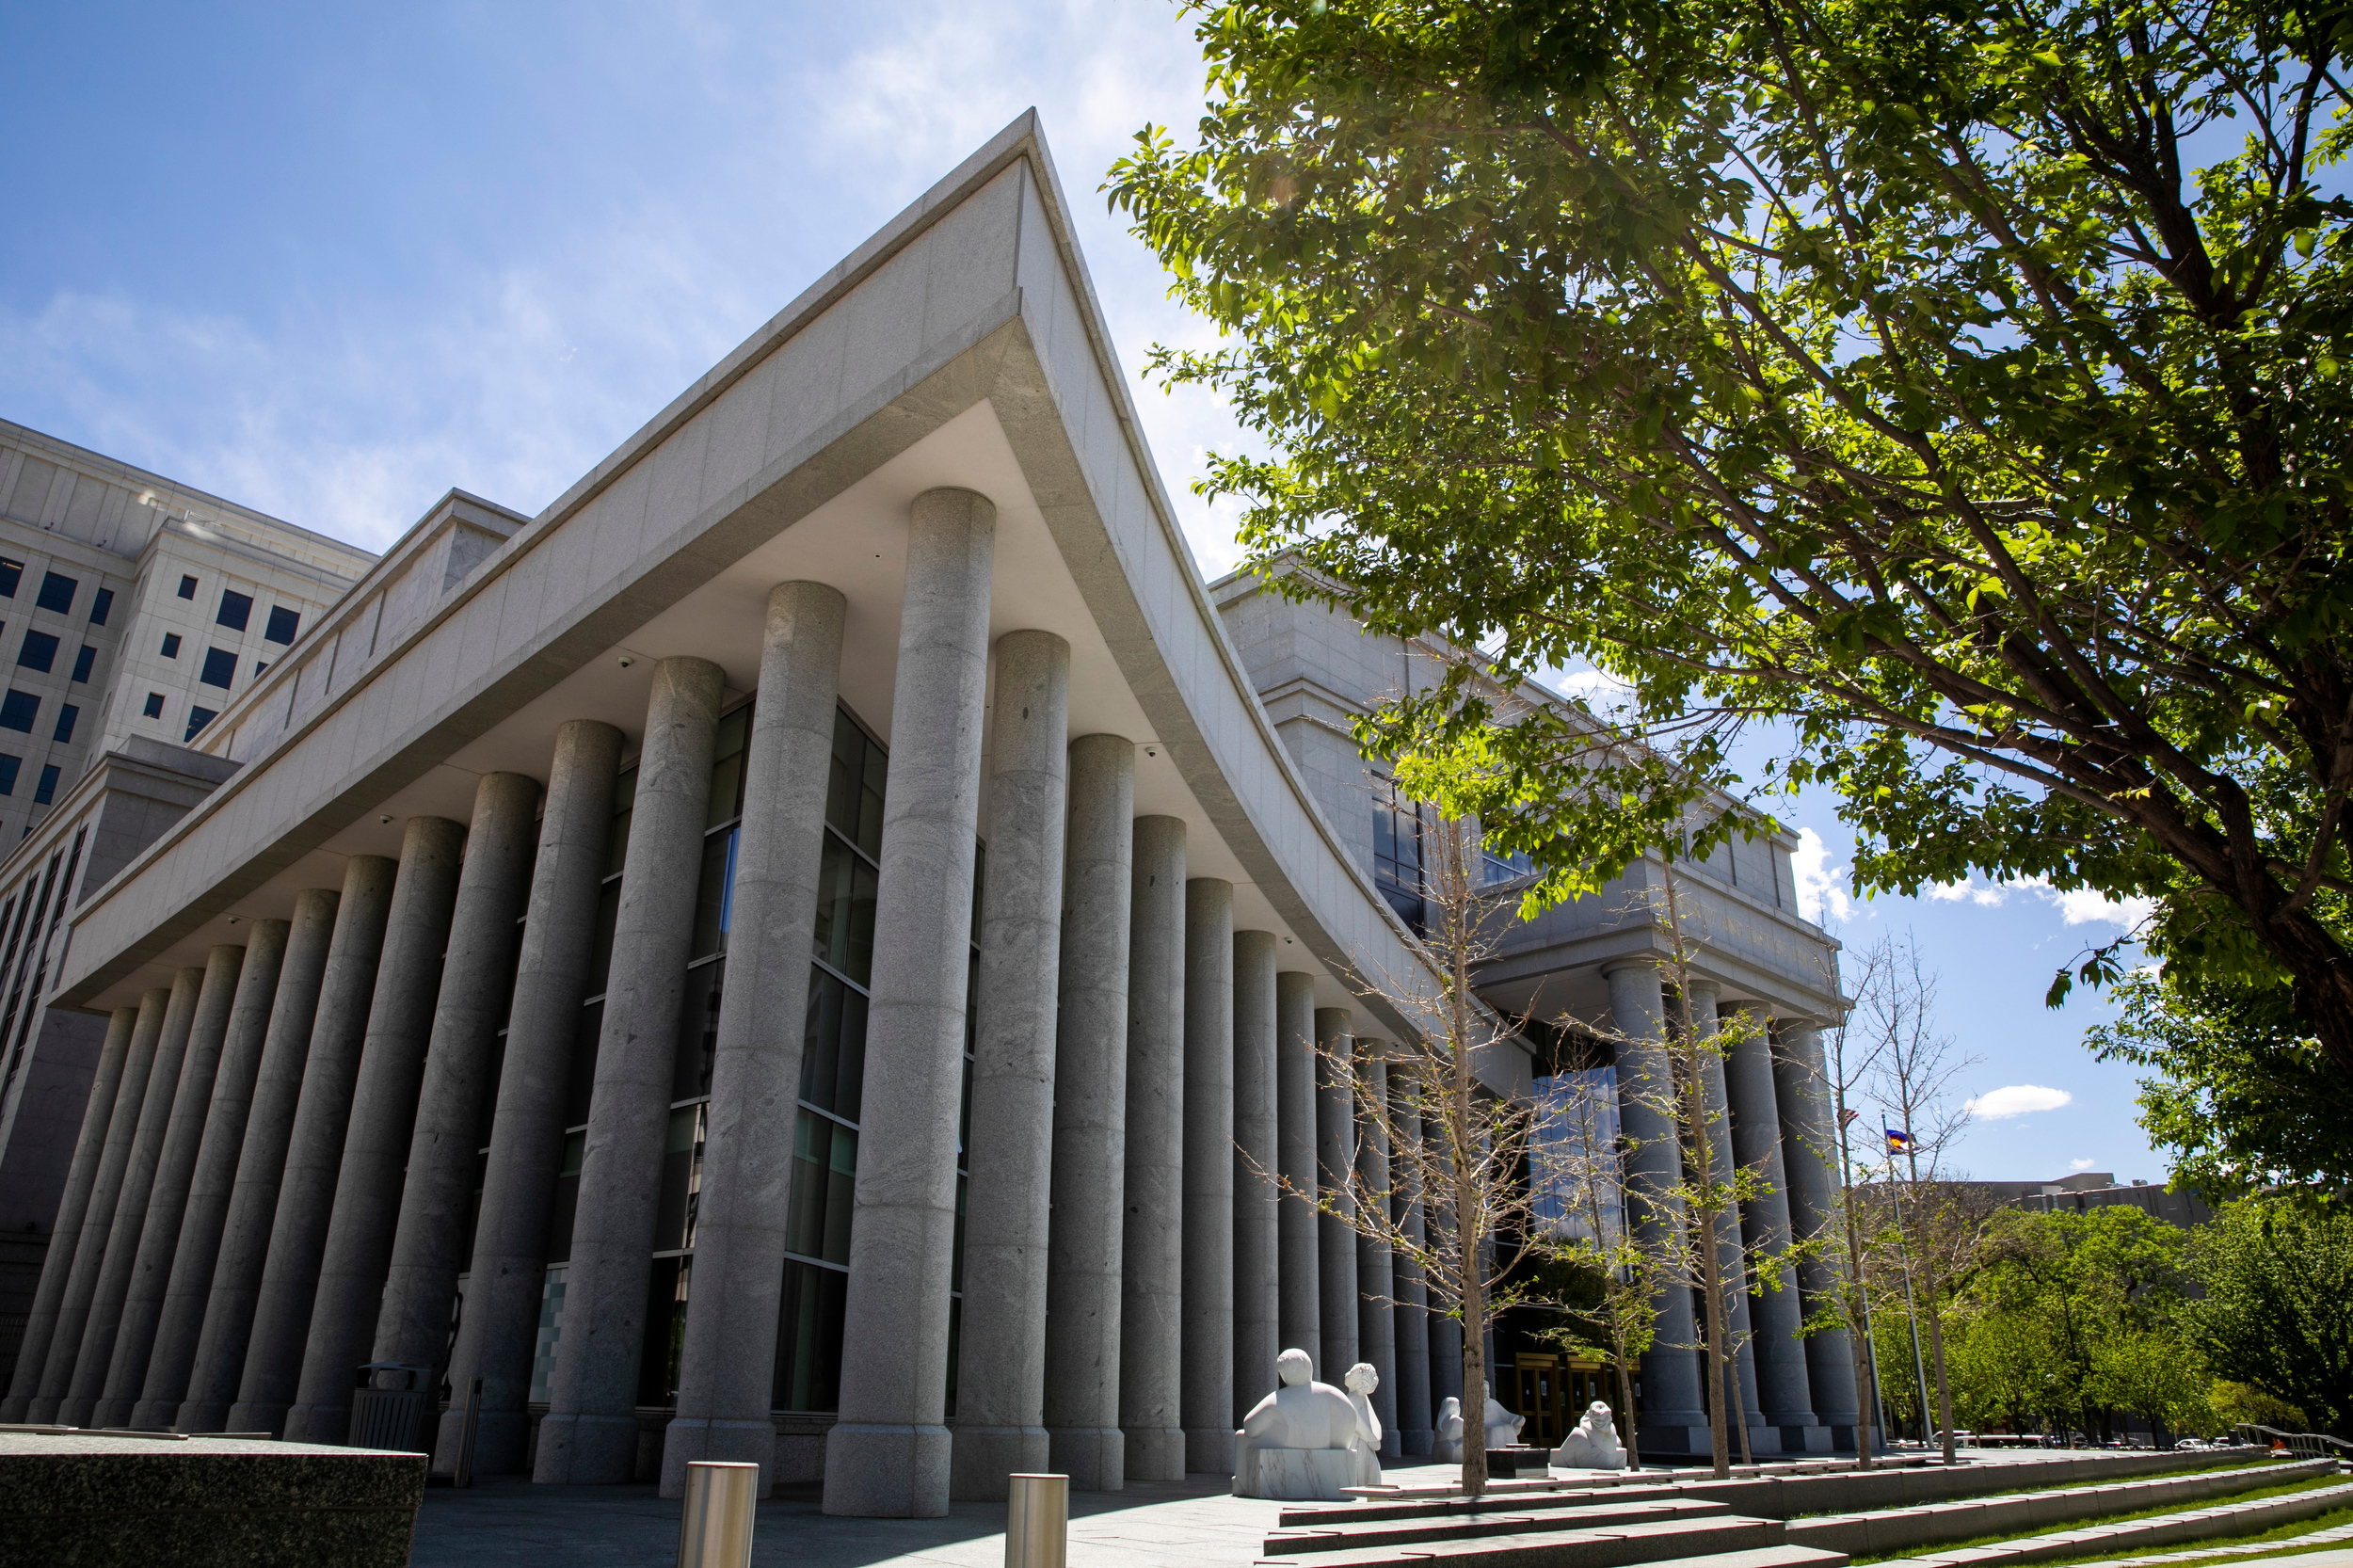 Colorado Supreme Court building in Denver